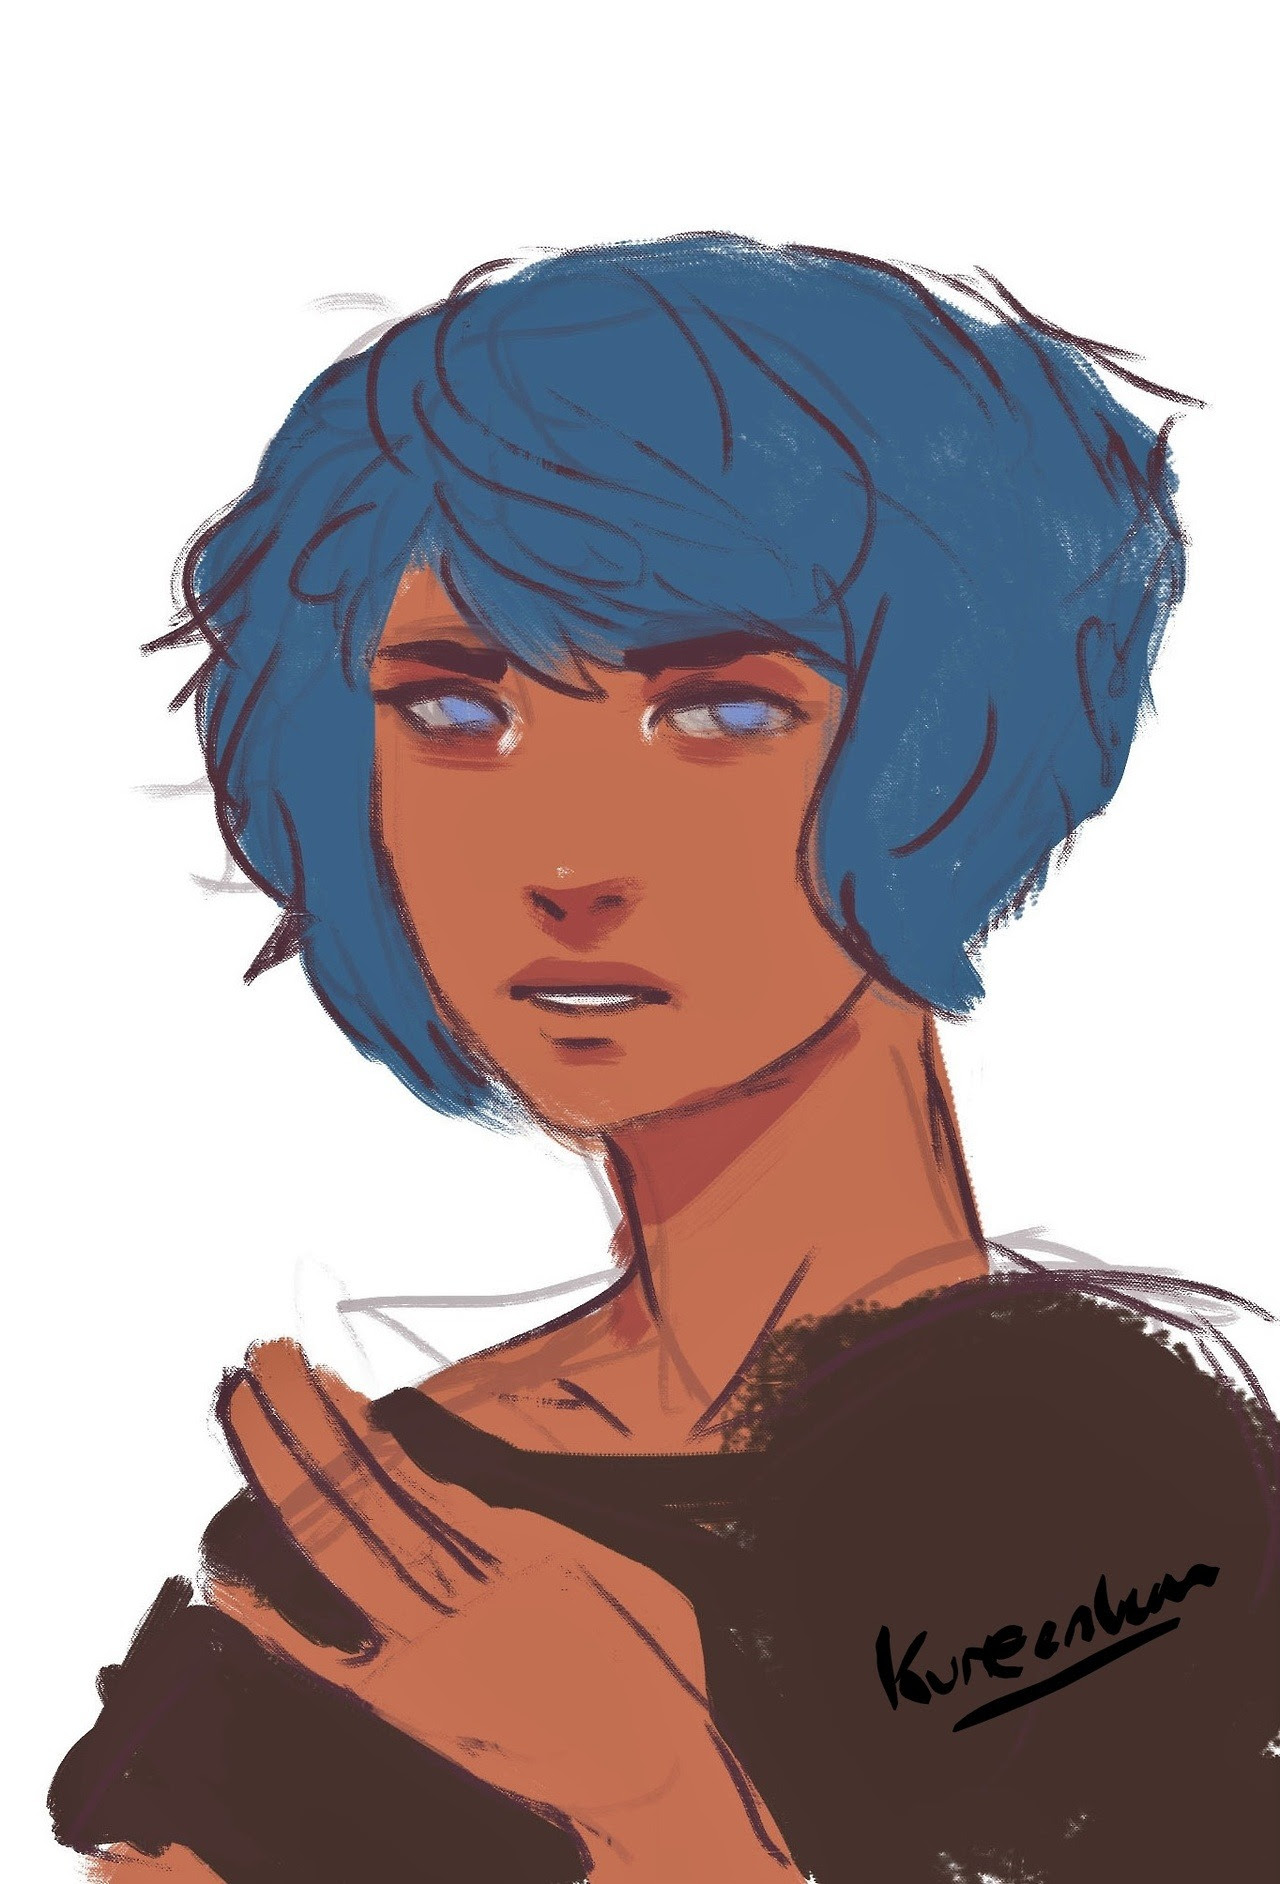 Out of all honesty, had a stupidly long break from art which was bad. But here have a lapis sketch from like awhile ago.